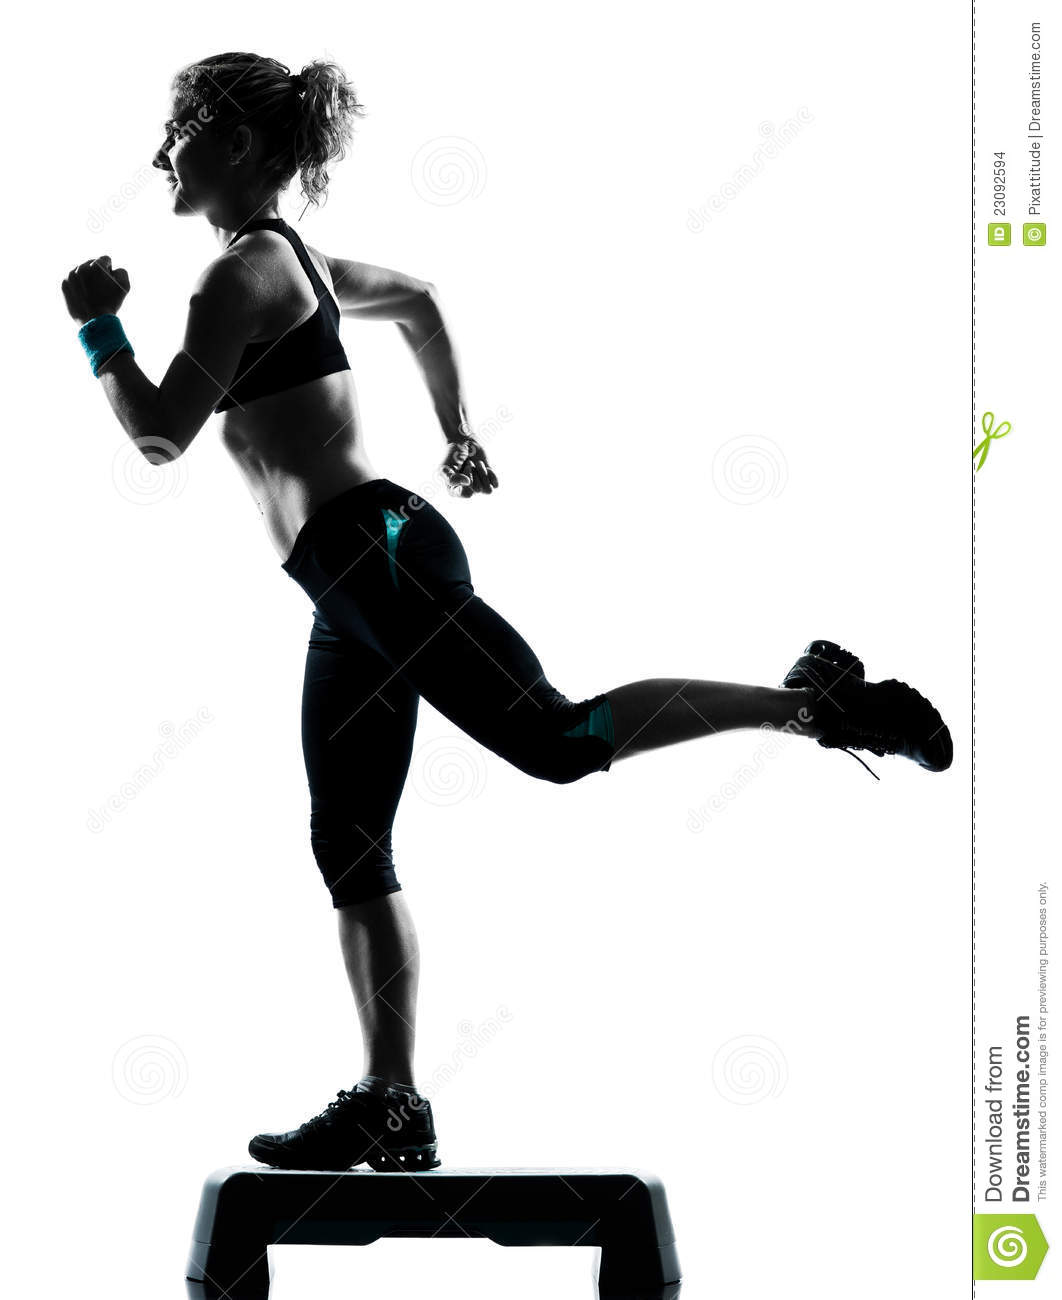 The relation of aerobic fitness to health in the united states